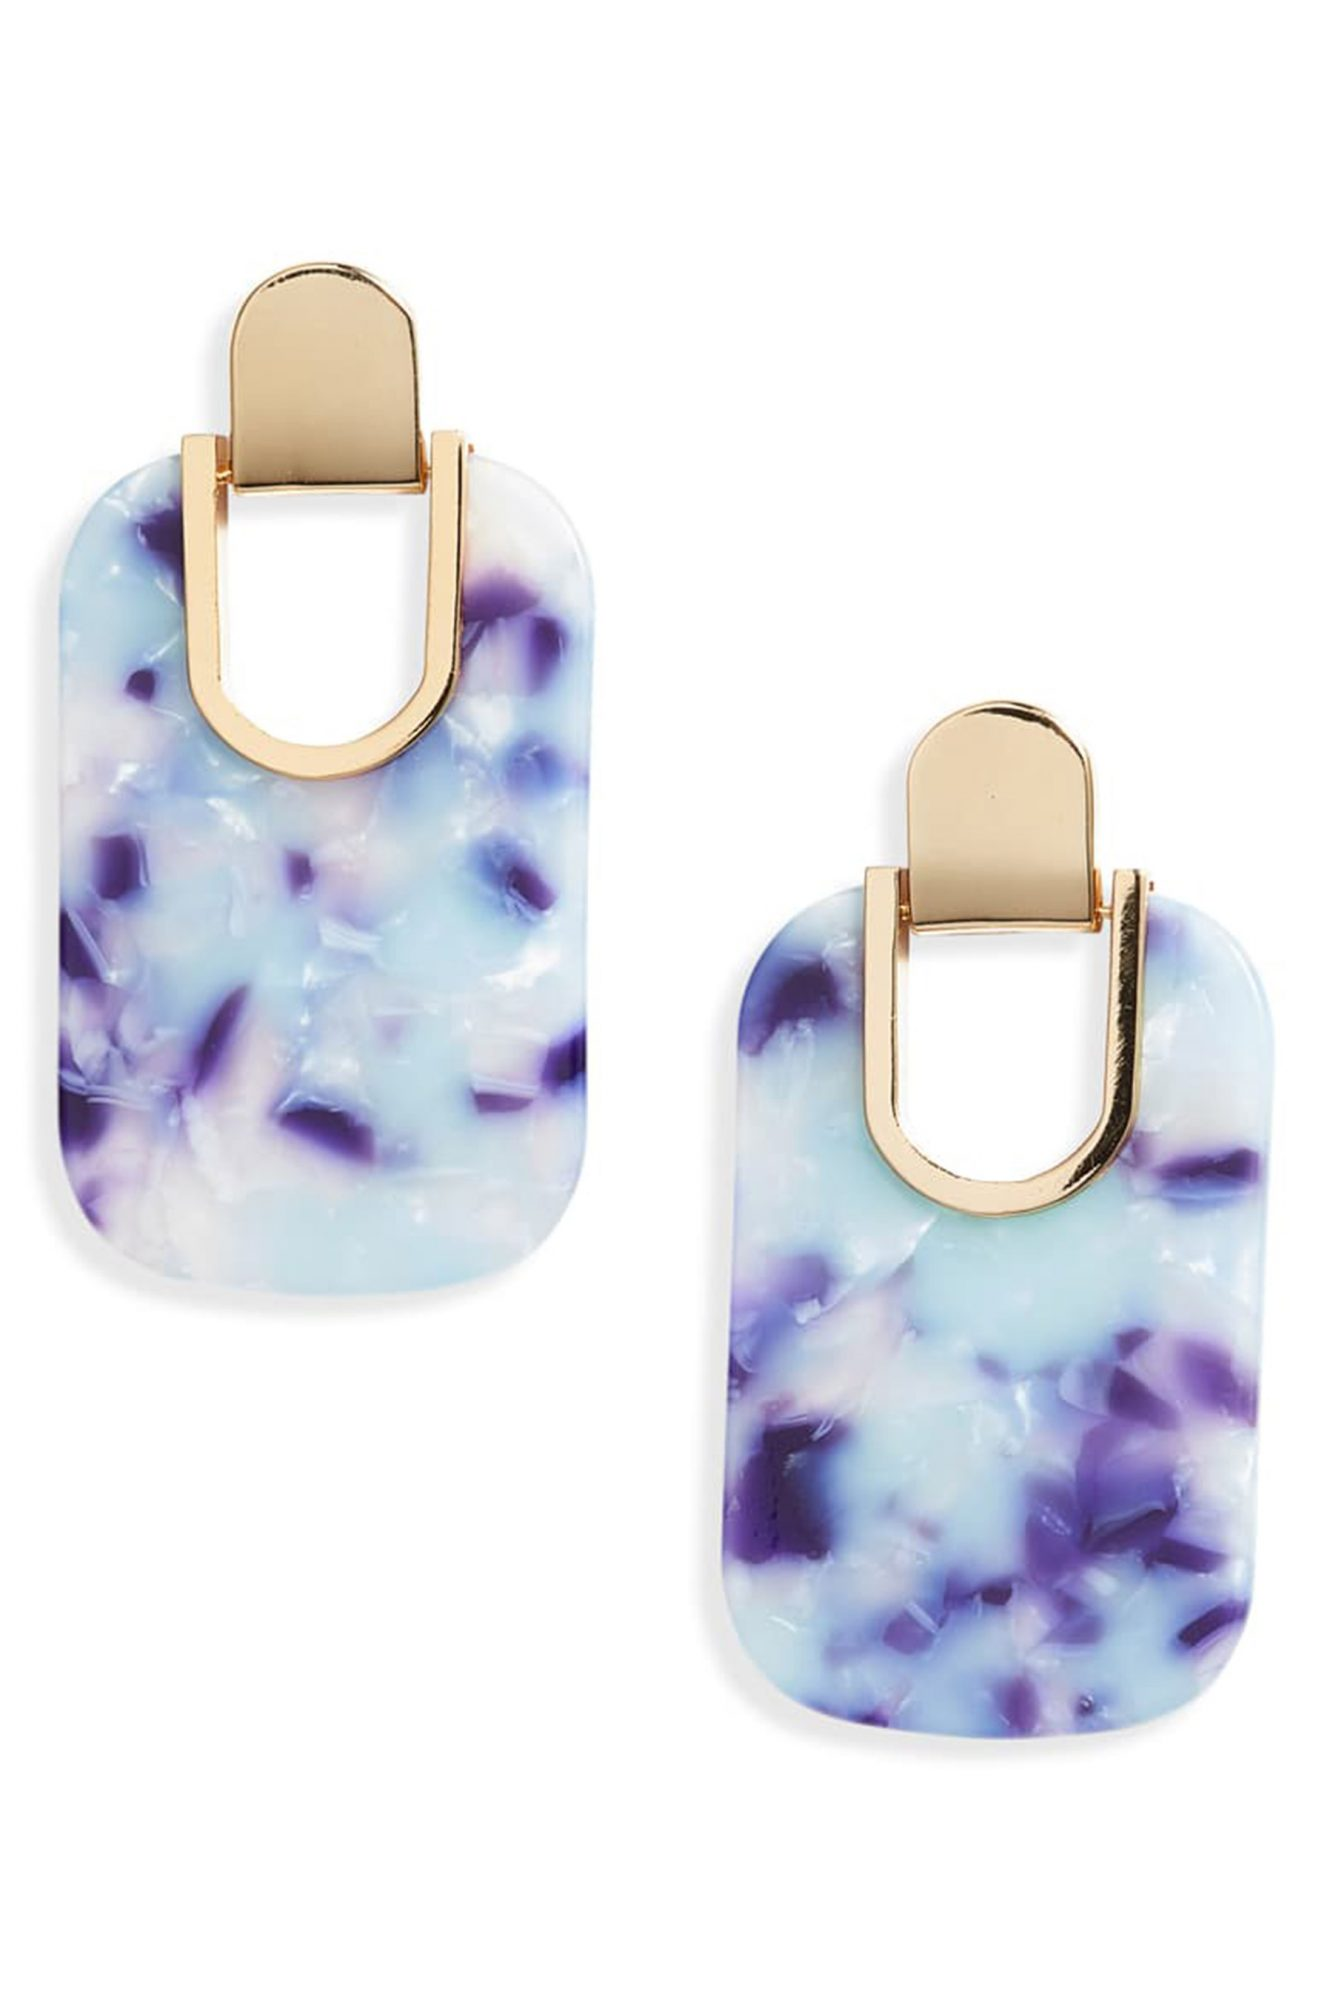 Kate Spade New York Statement Earrings at Nordstrom